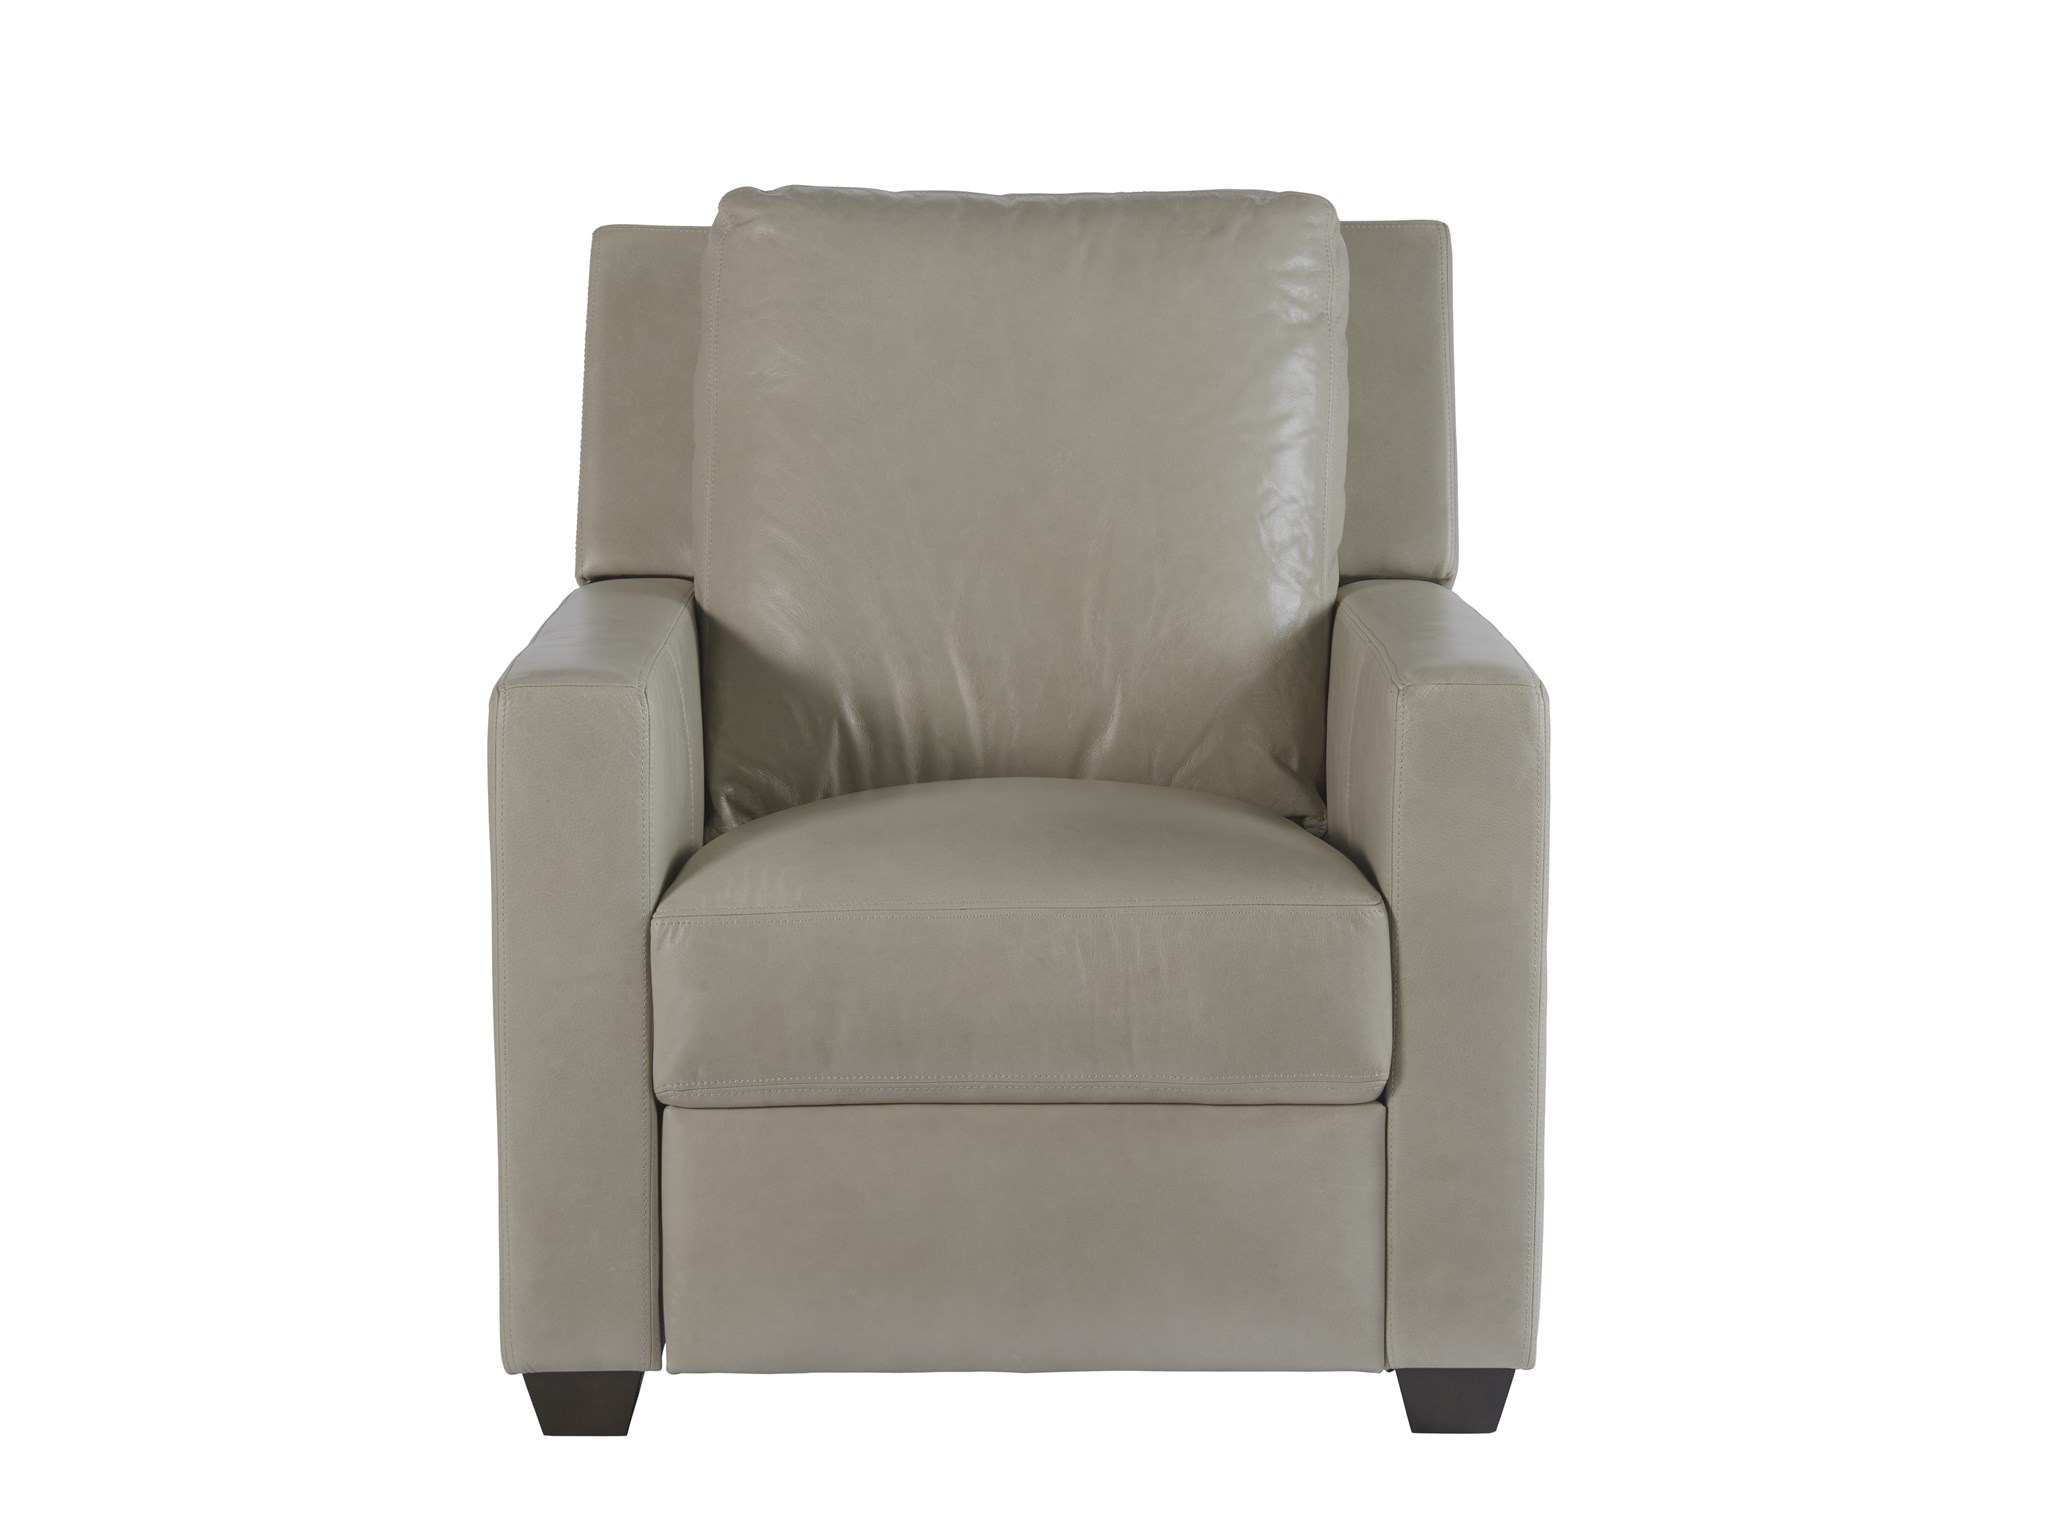 The Taylor Power Recliner